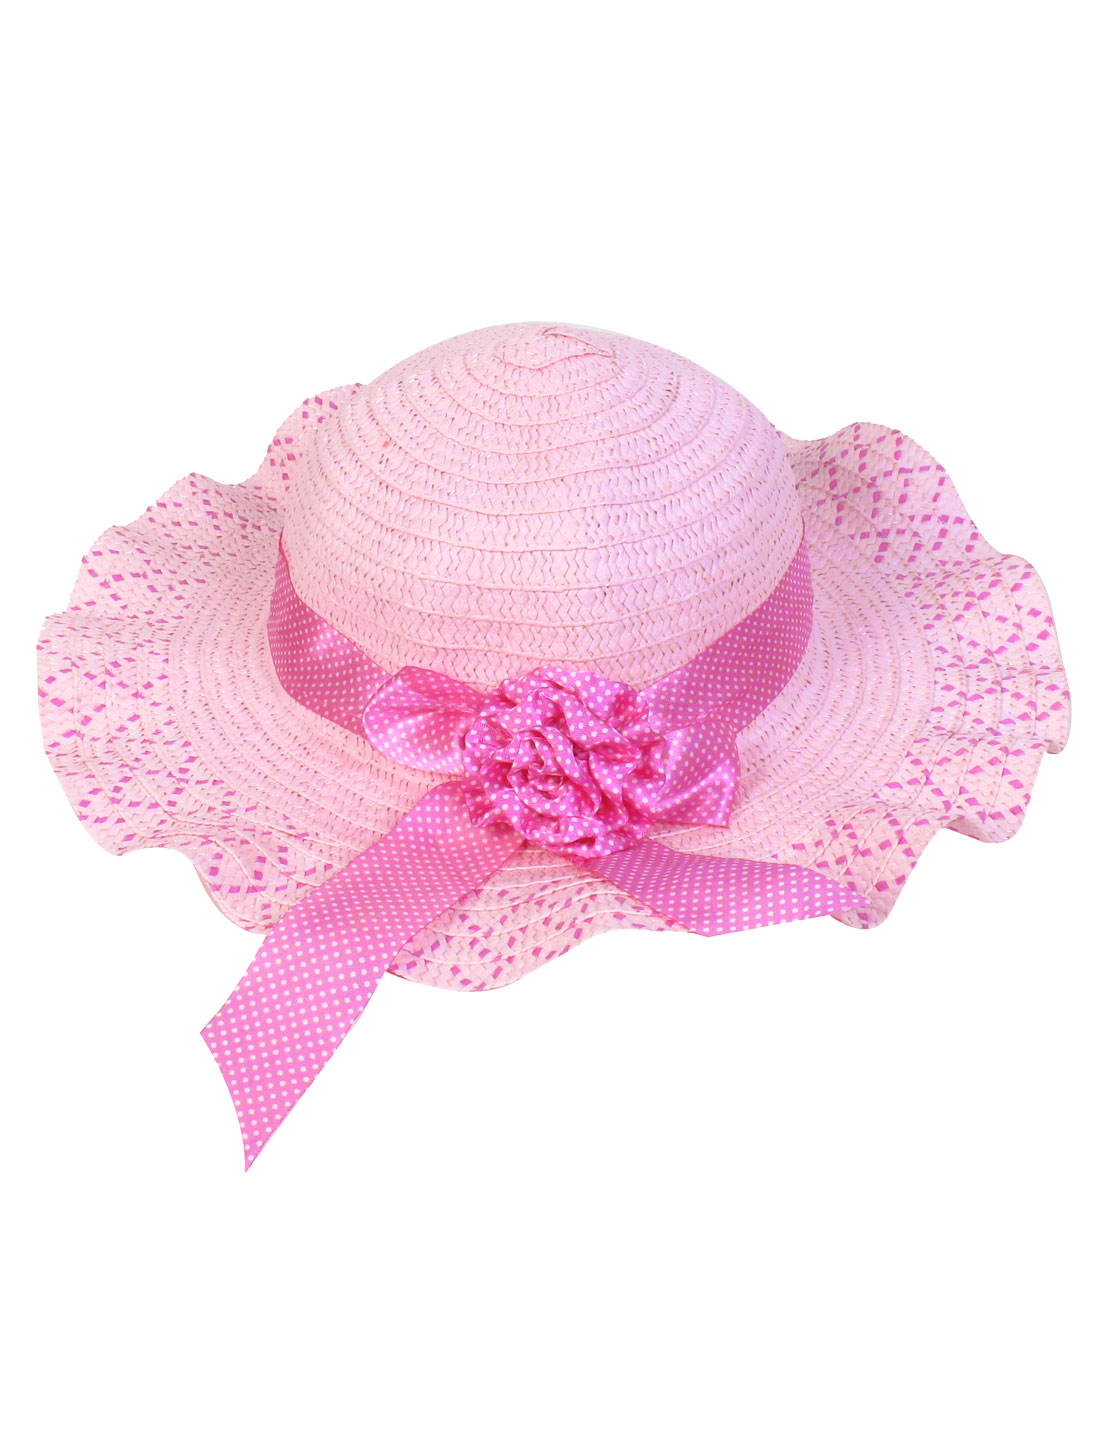 Flower Decor Fuchsia Dotted Wide Brim Pink Sun Hat for Lady